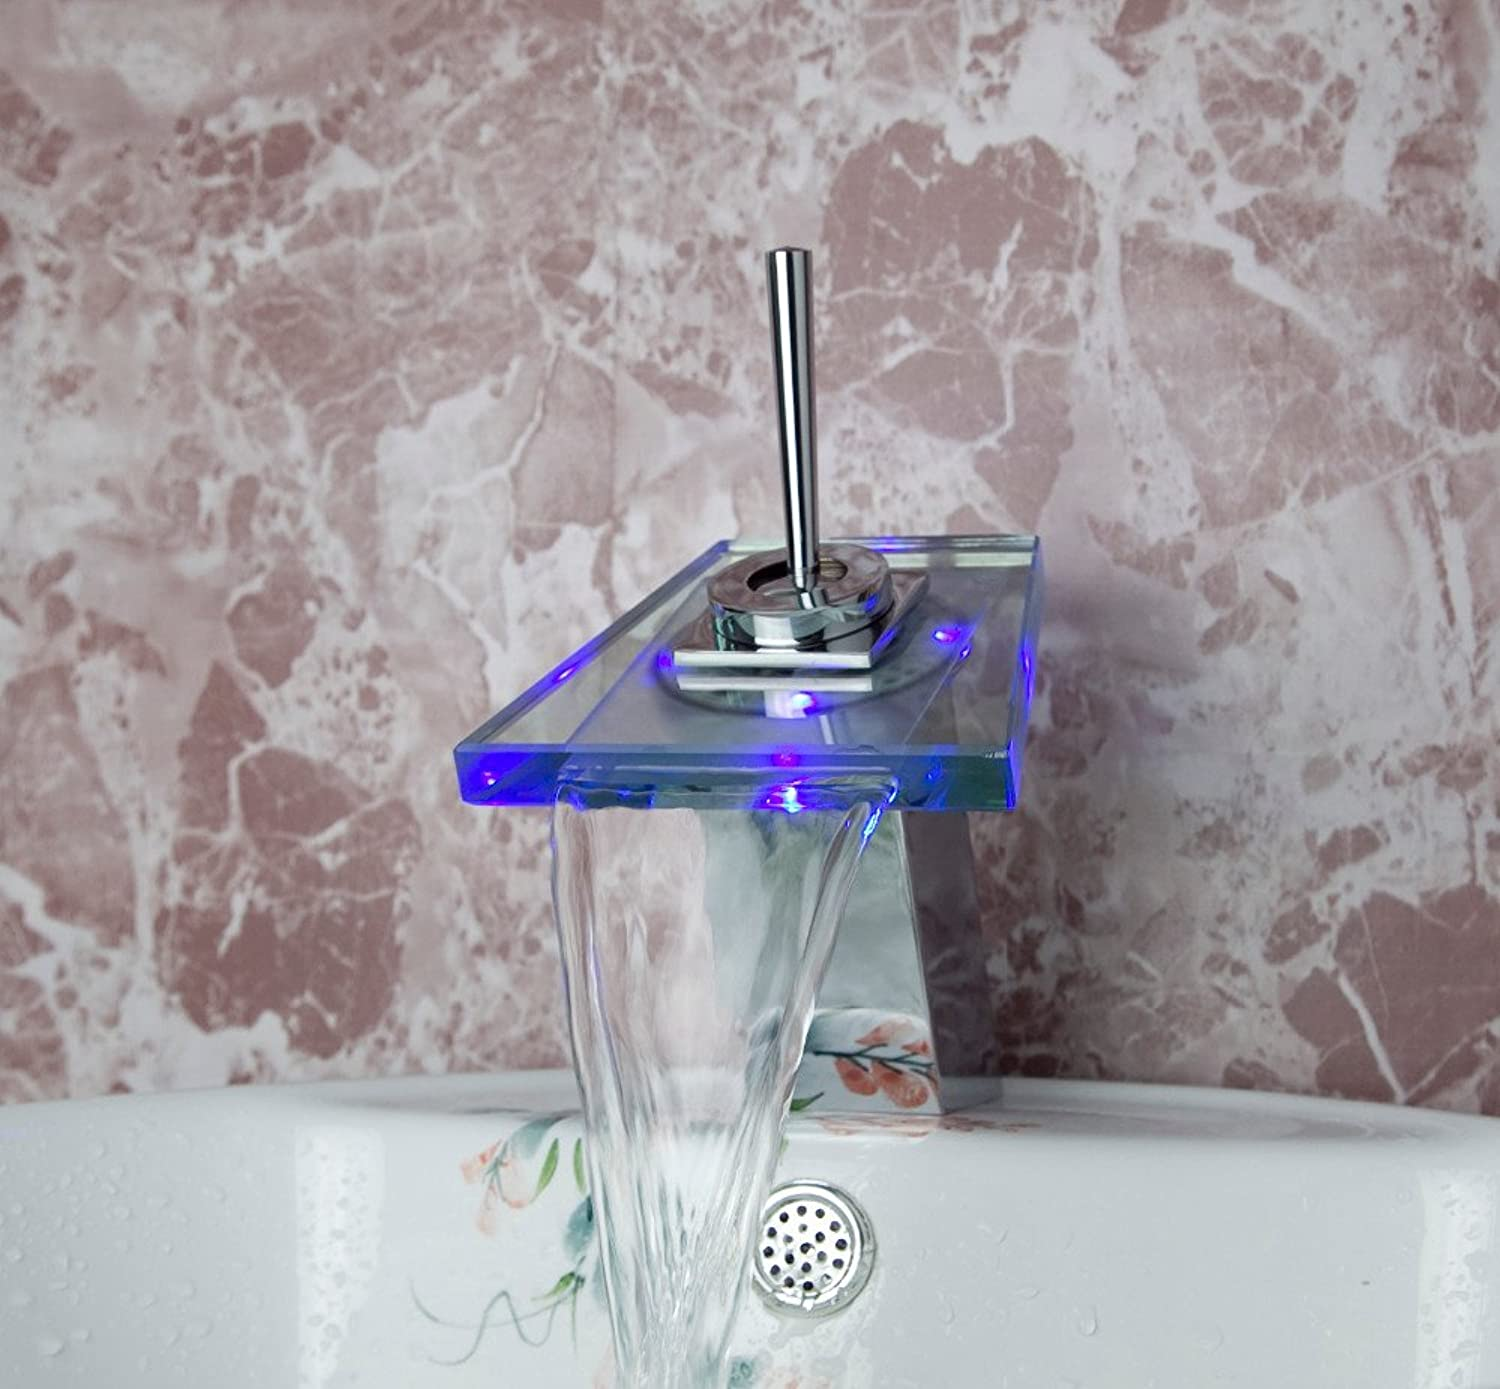 Retro Deluxe FaucetingSingle Swivel Handle Led Chrome Faucet Sink Mixer Waterfall Bathroom Basin Tap Glass color Changing Tree471